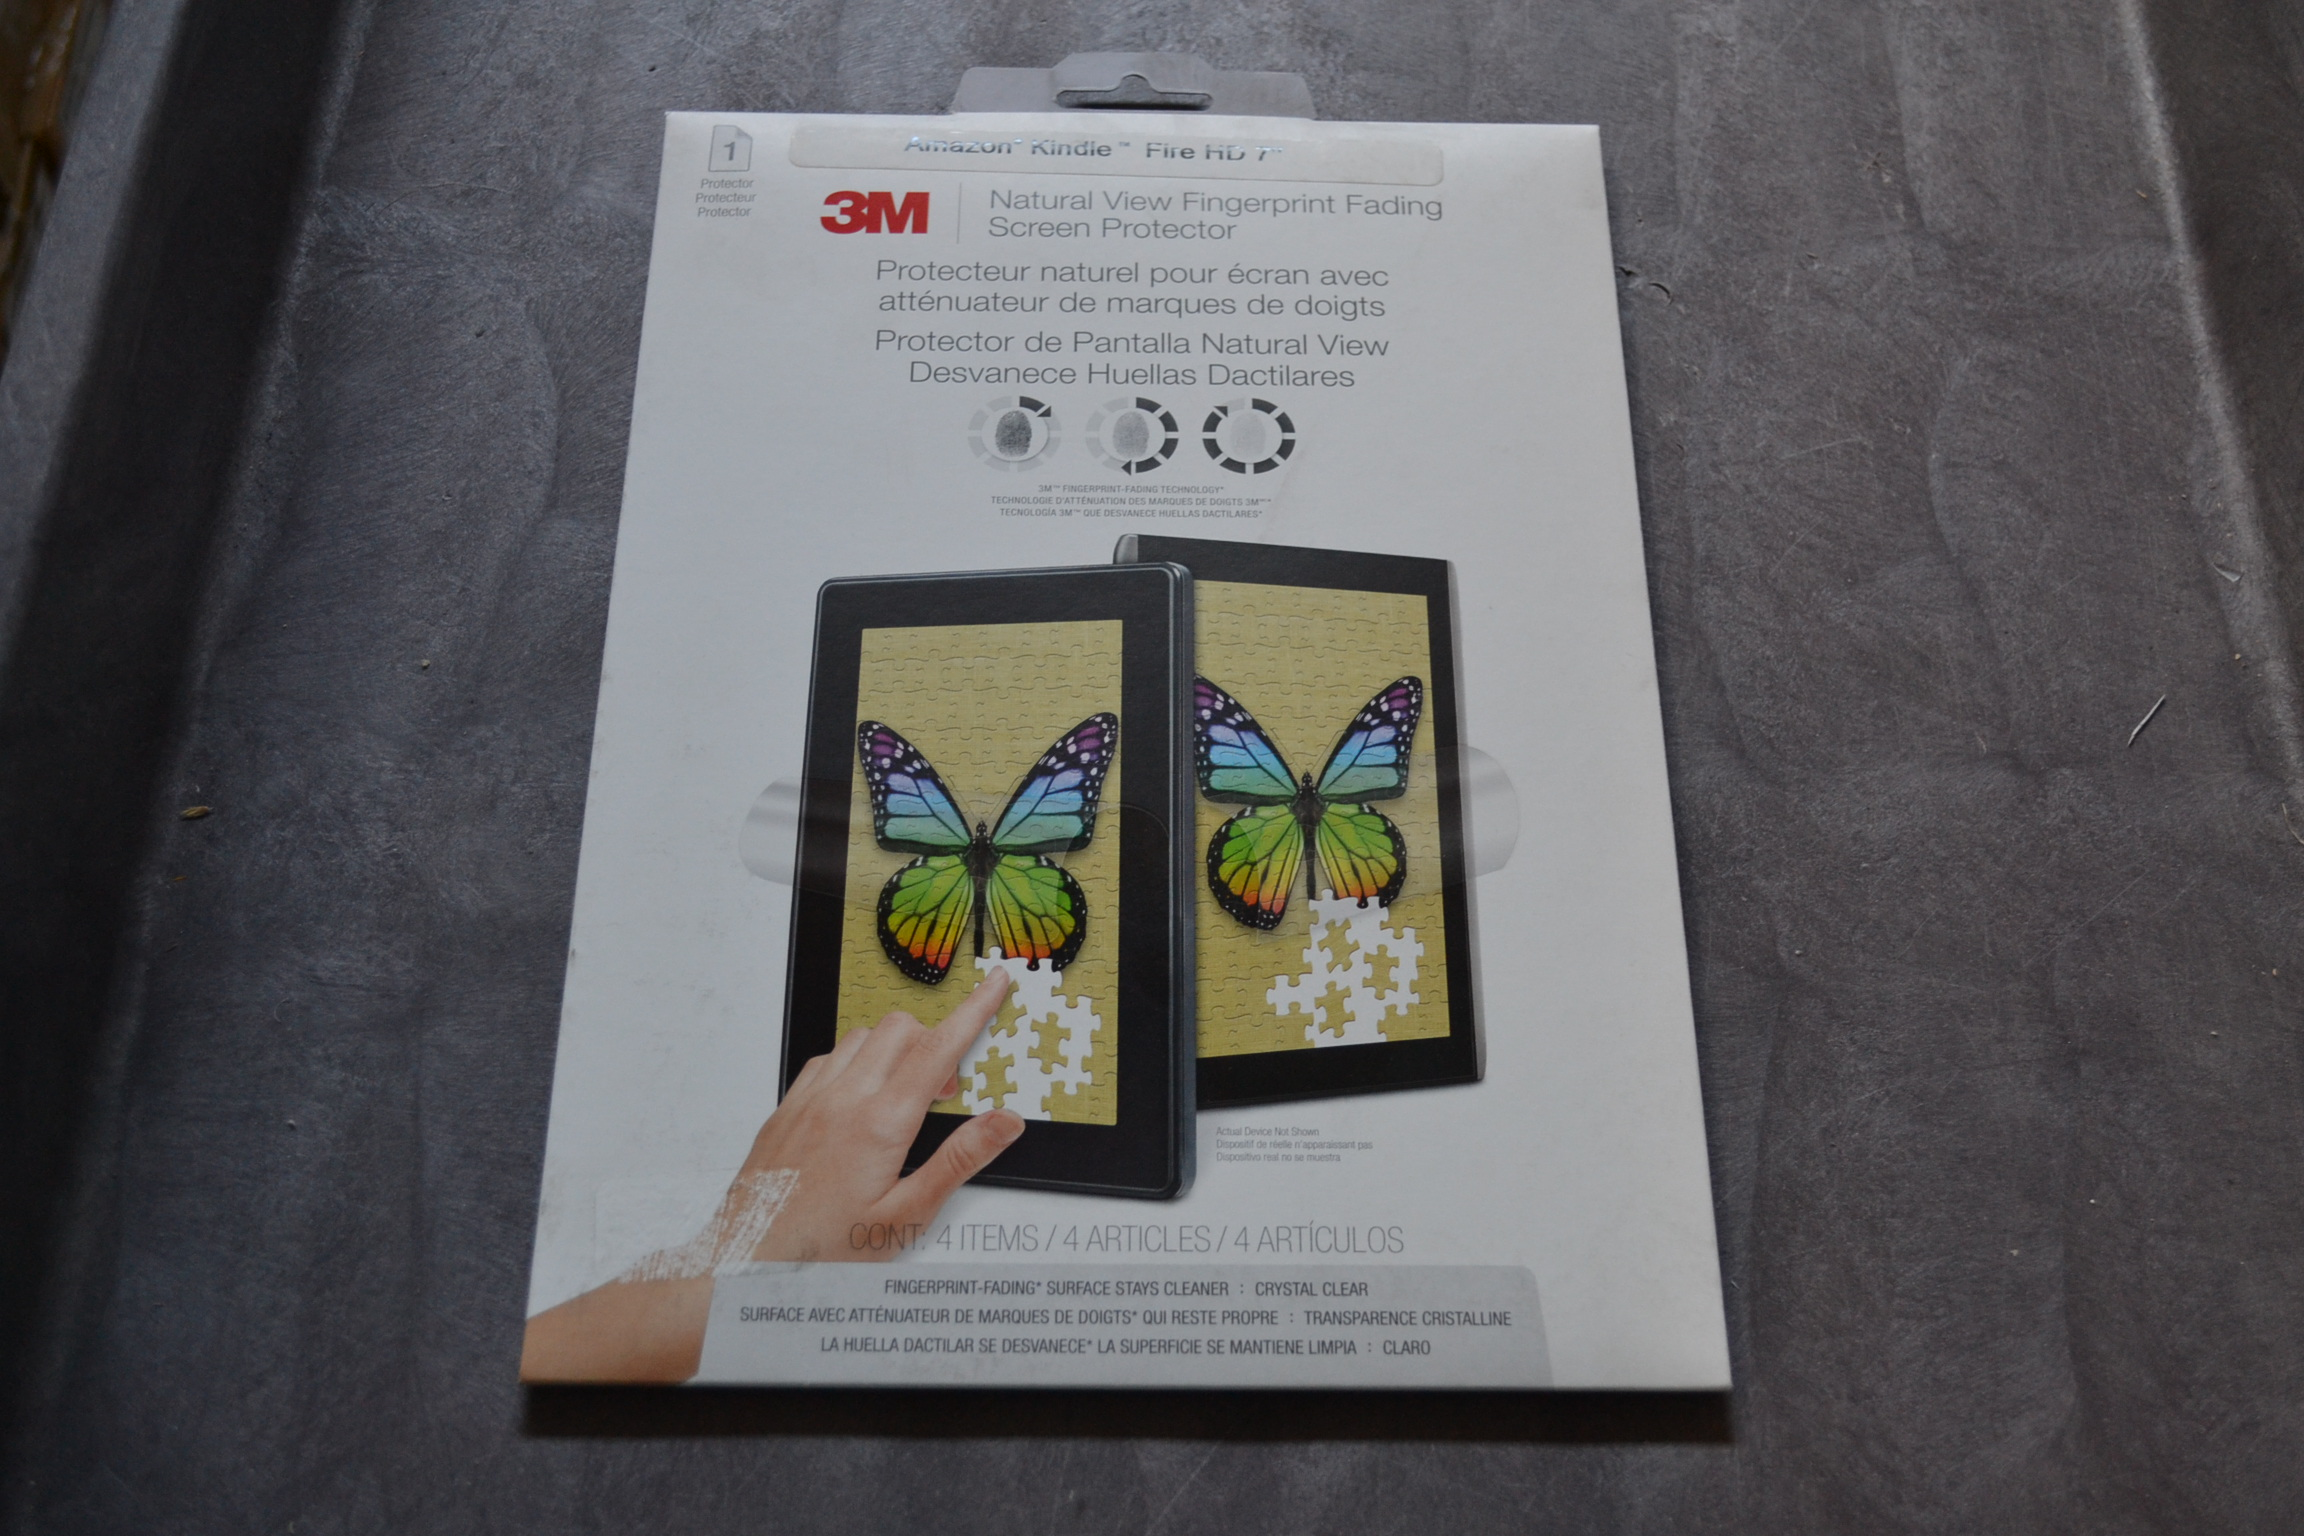 3M NVFF828502? Natural View Fingerprint Fading Screen Protector Amazon Kindle? F